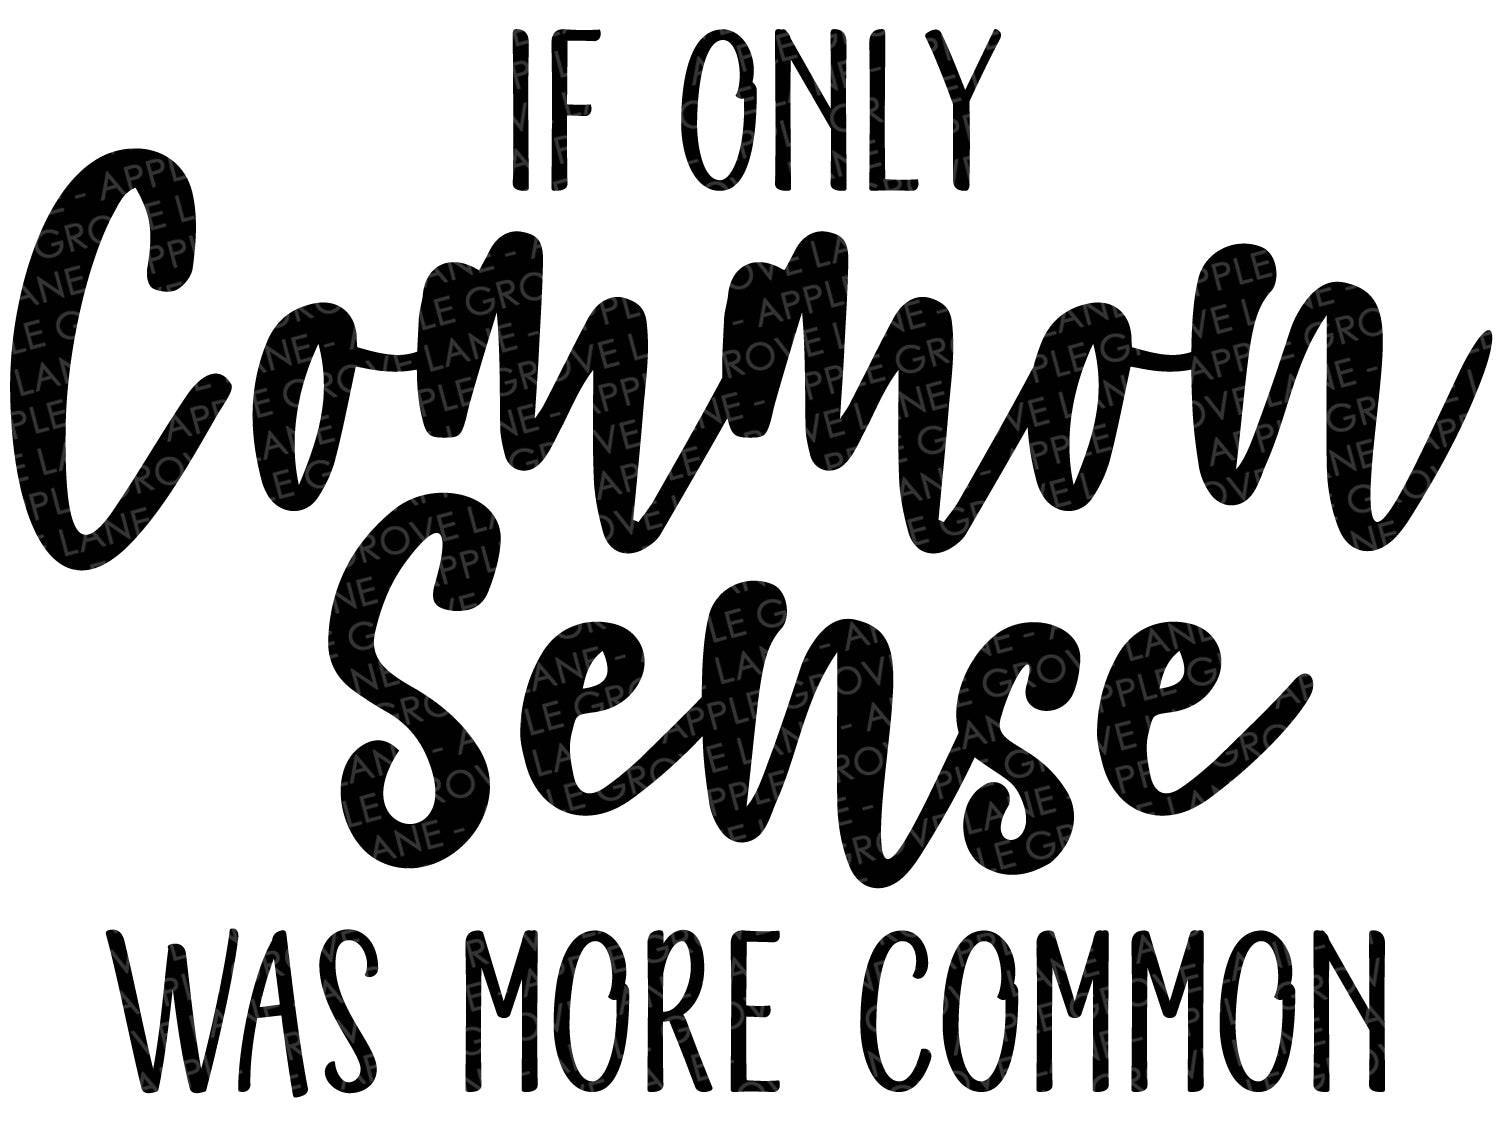 Common Sense Svg - Sarcastic SVG - Humor Svg - Common Sense Clip Art - Funny Svg - Funny Shirt Design - Sarcasm Svg - Svg Eps Dxf Png